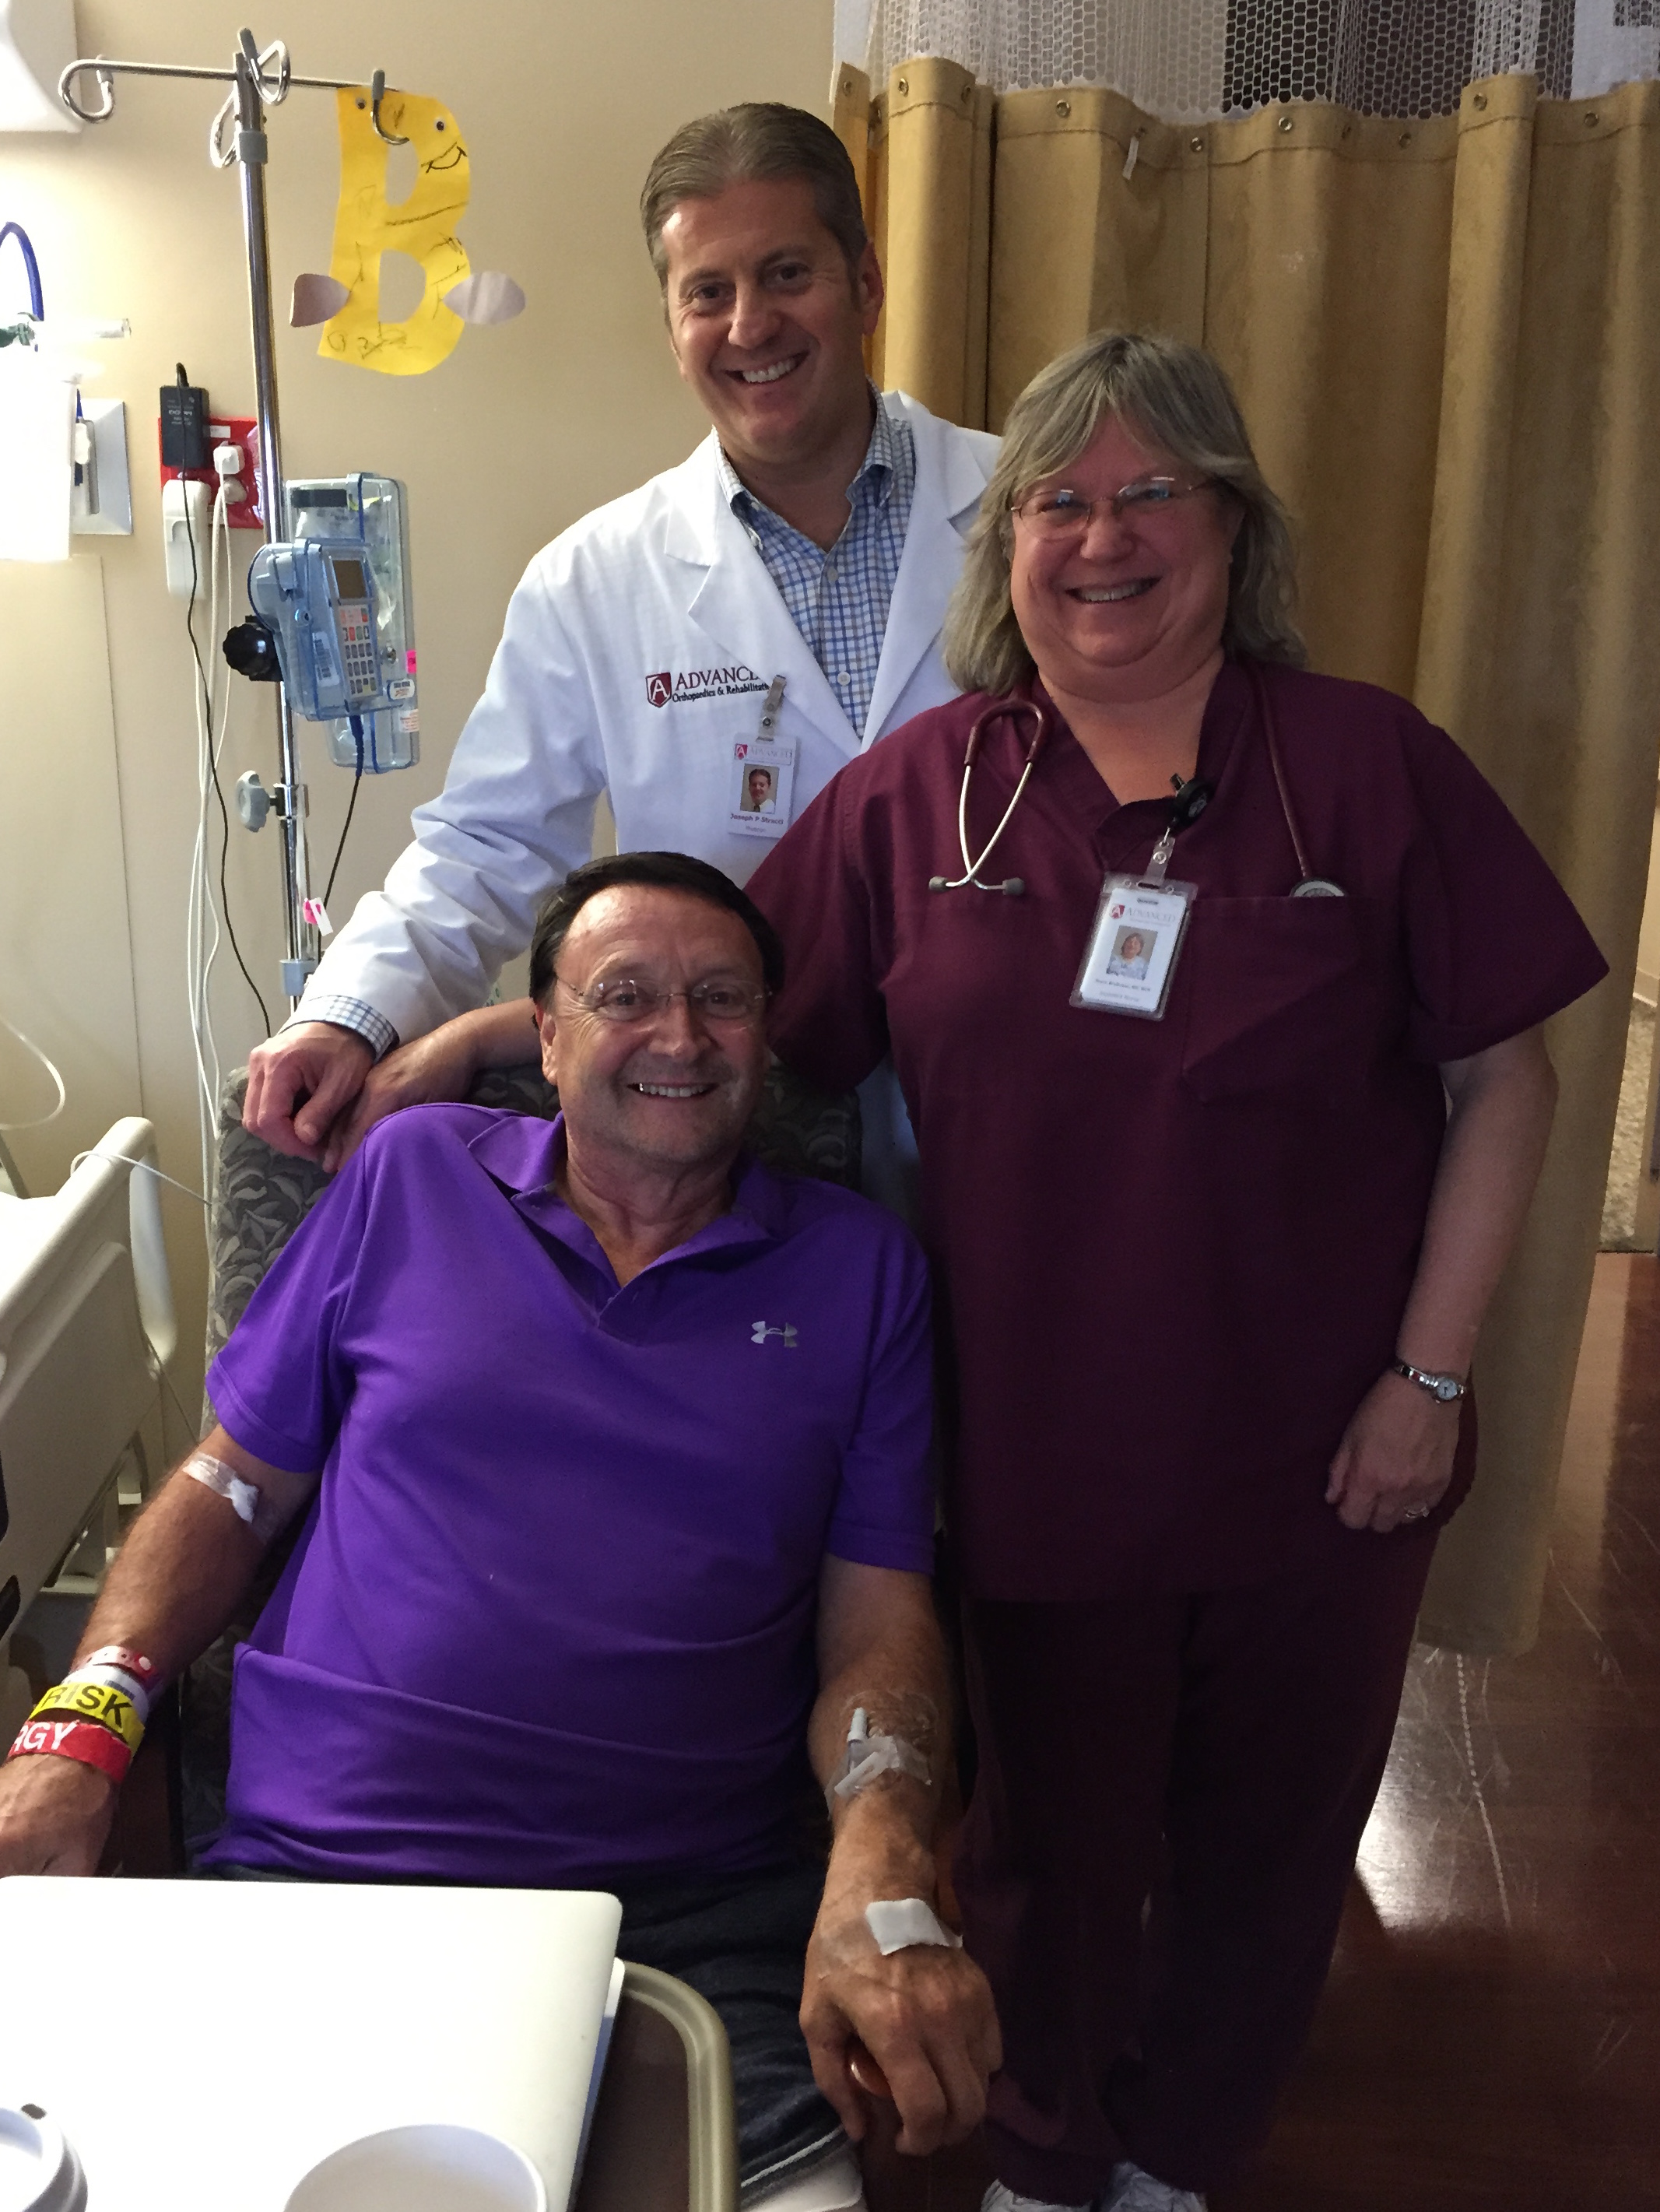 Tim, Dr. Stracci, and Nurse Joyce at Advanced Orthopedics